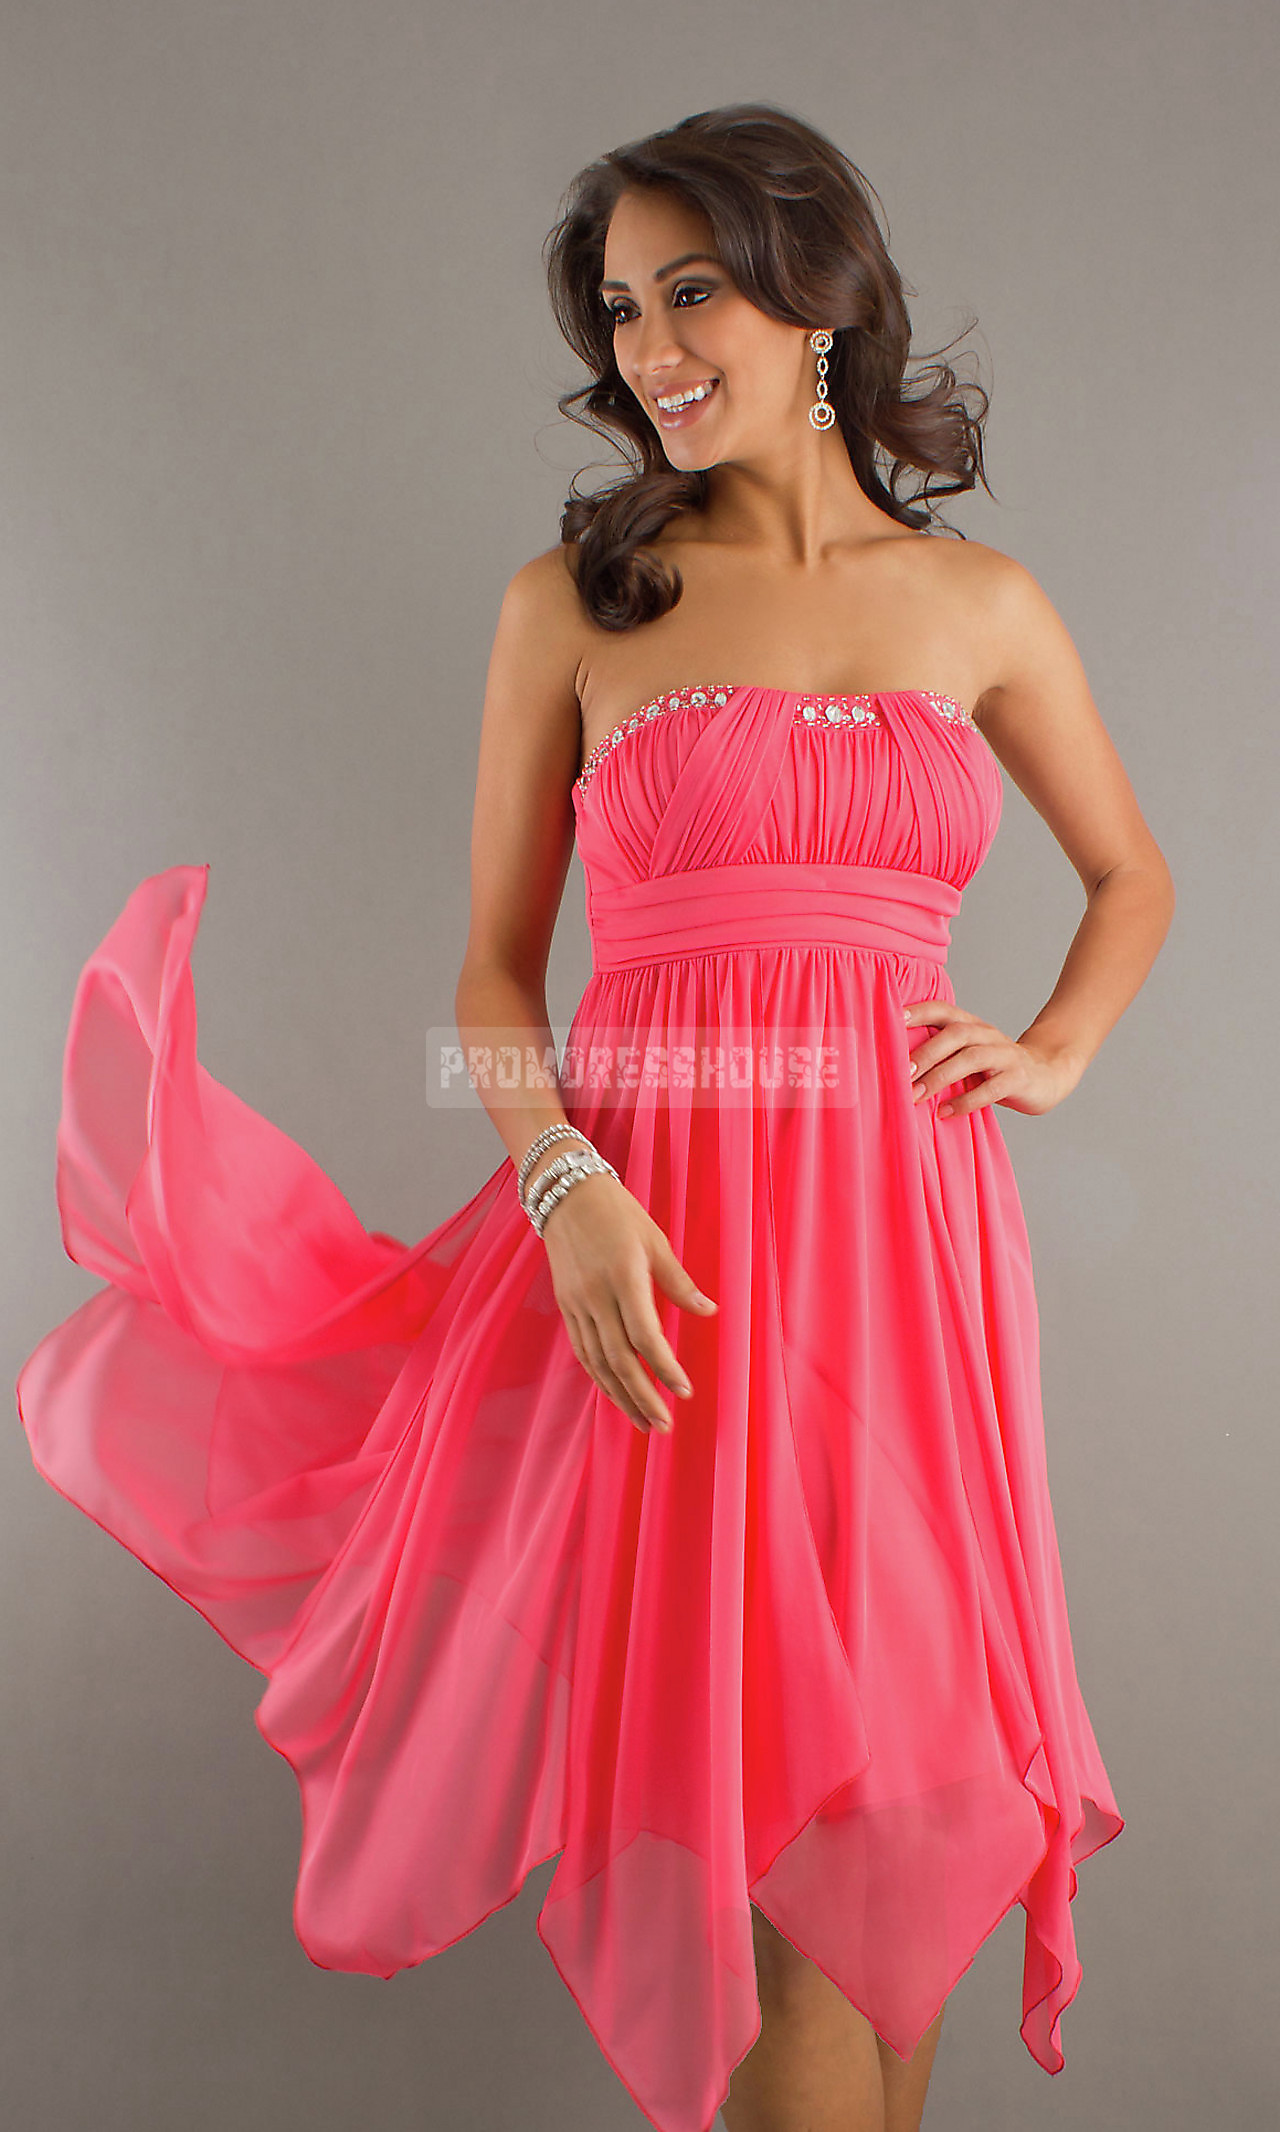 Empire Pleats Beading Watermelon A-line Prom Dress - Promdresshouse.com